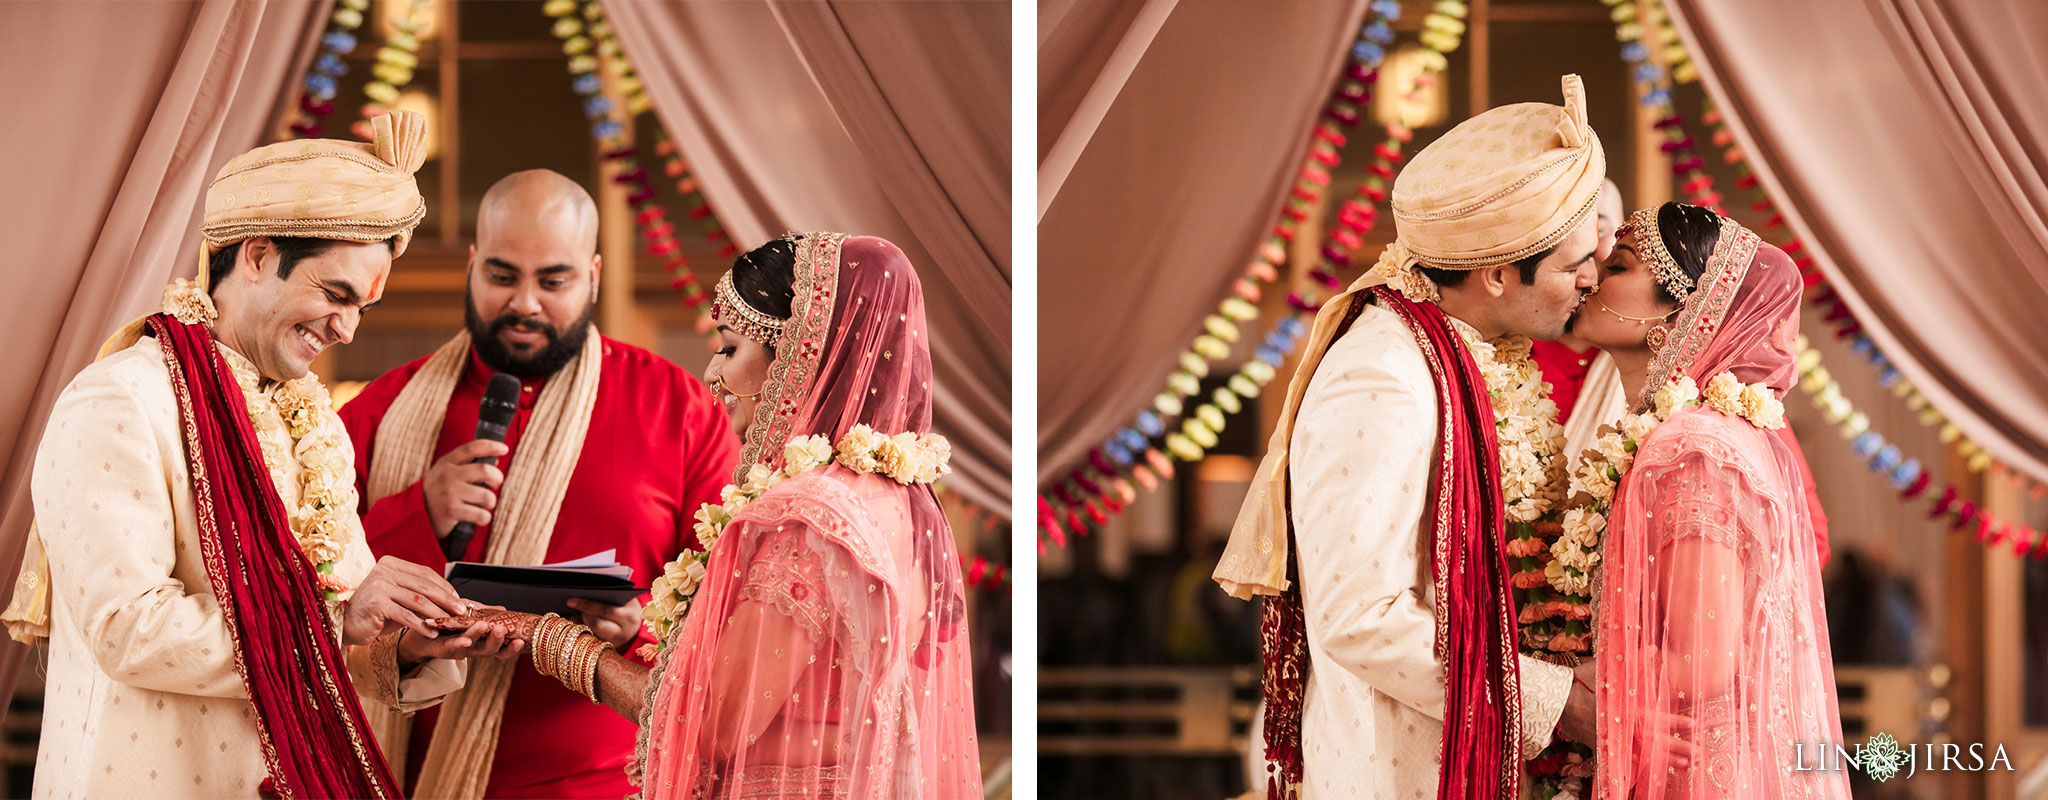 37 Union Station Los Angeles Indian Wedding Photography